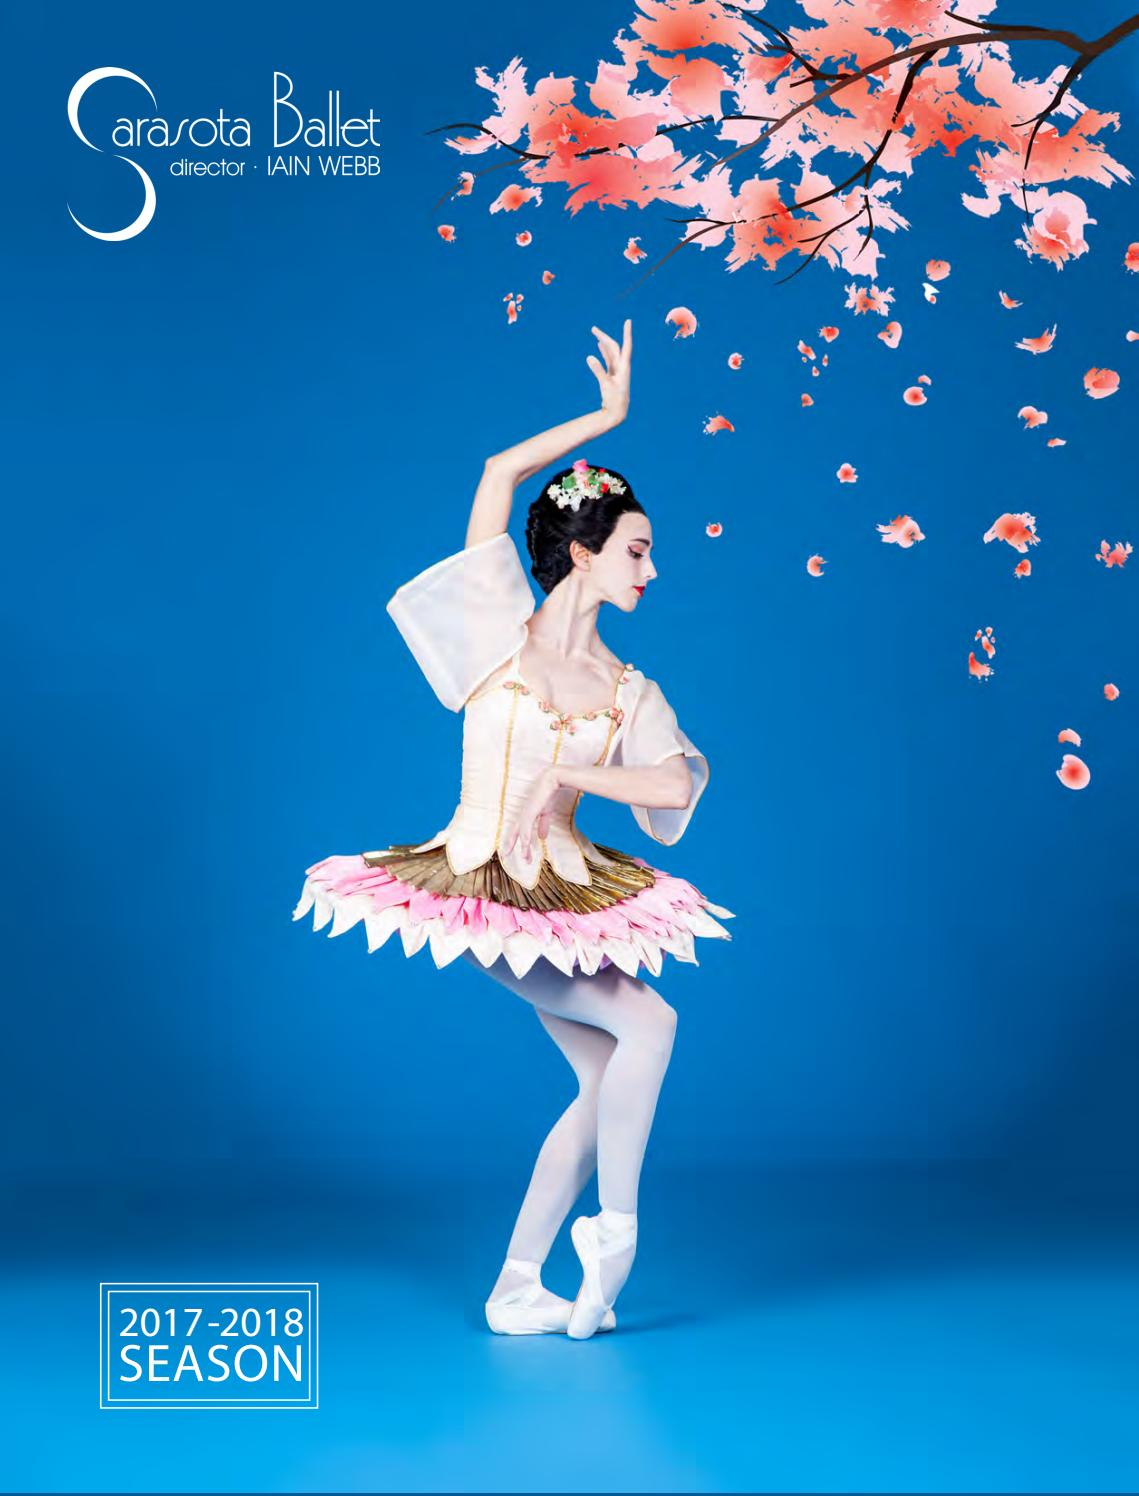 fd930b78964cc 2017-2018 Season Program Book by Sarasota Ballet - issuu